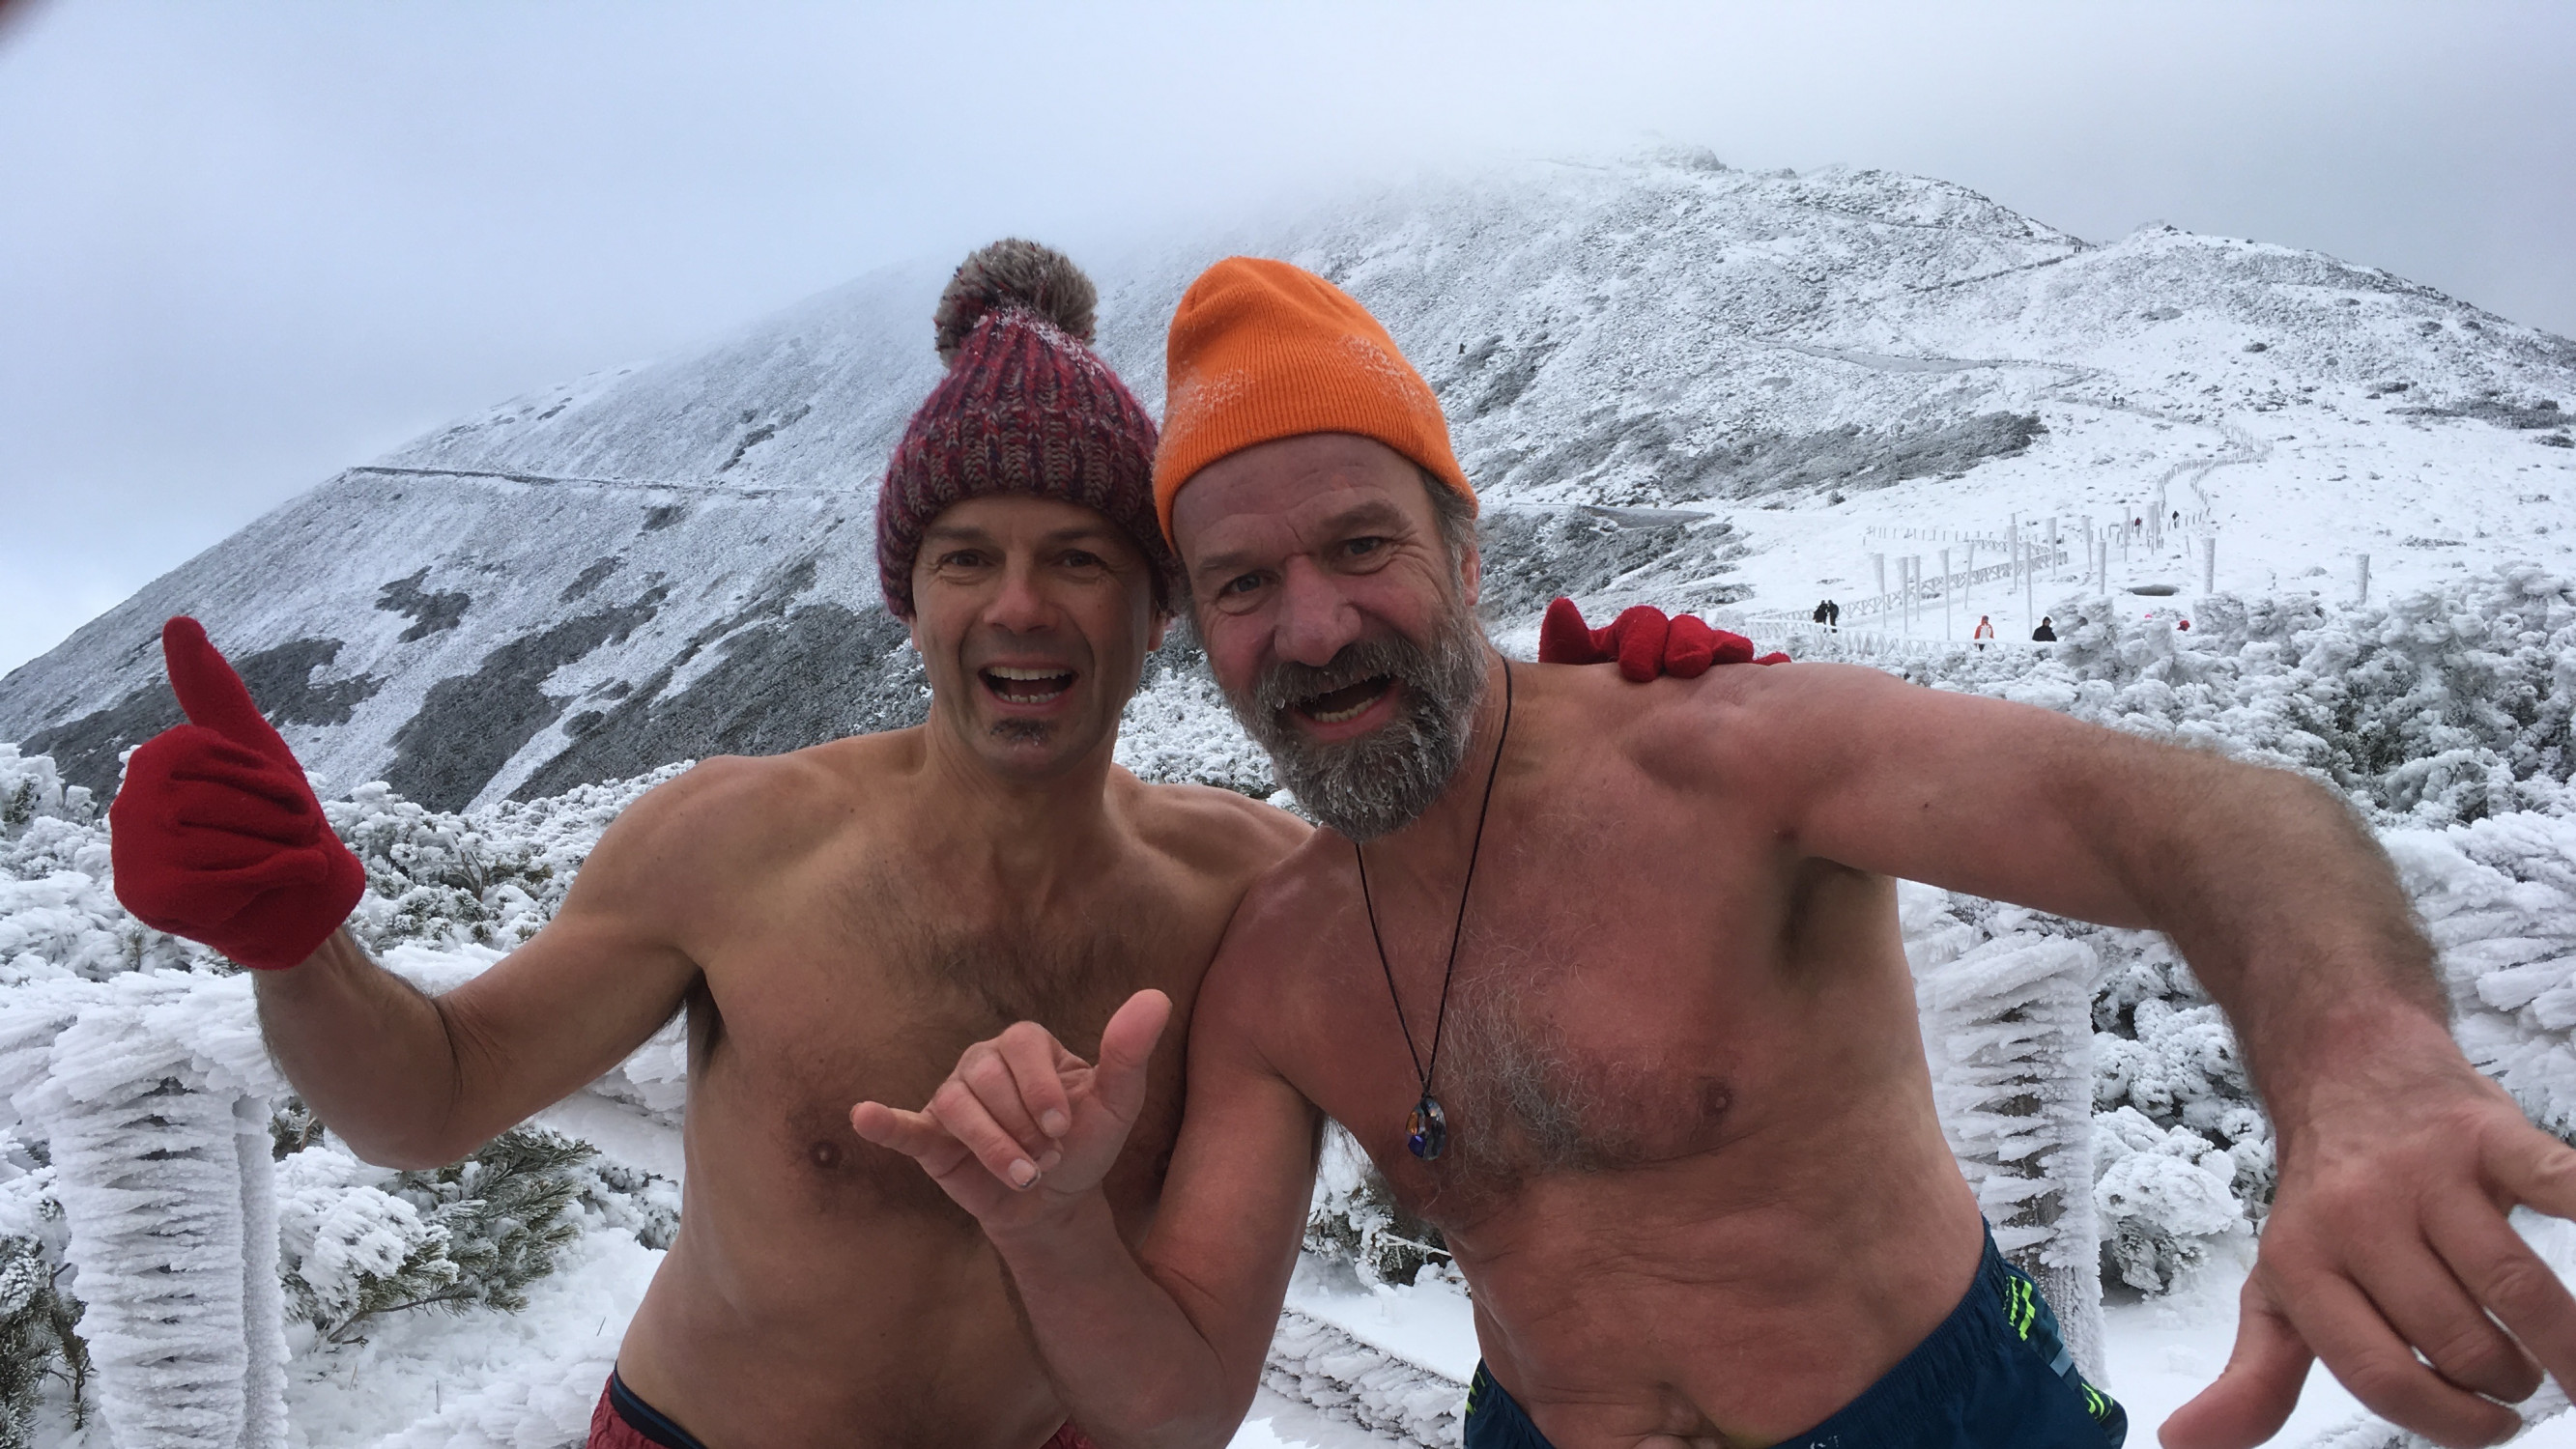 Image 1 of 5 - Experience the Wim Hof Method to get an impression of  at